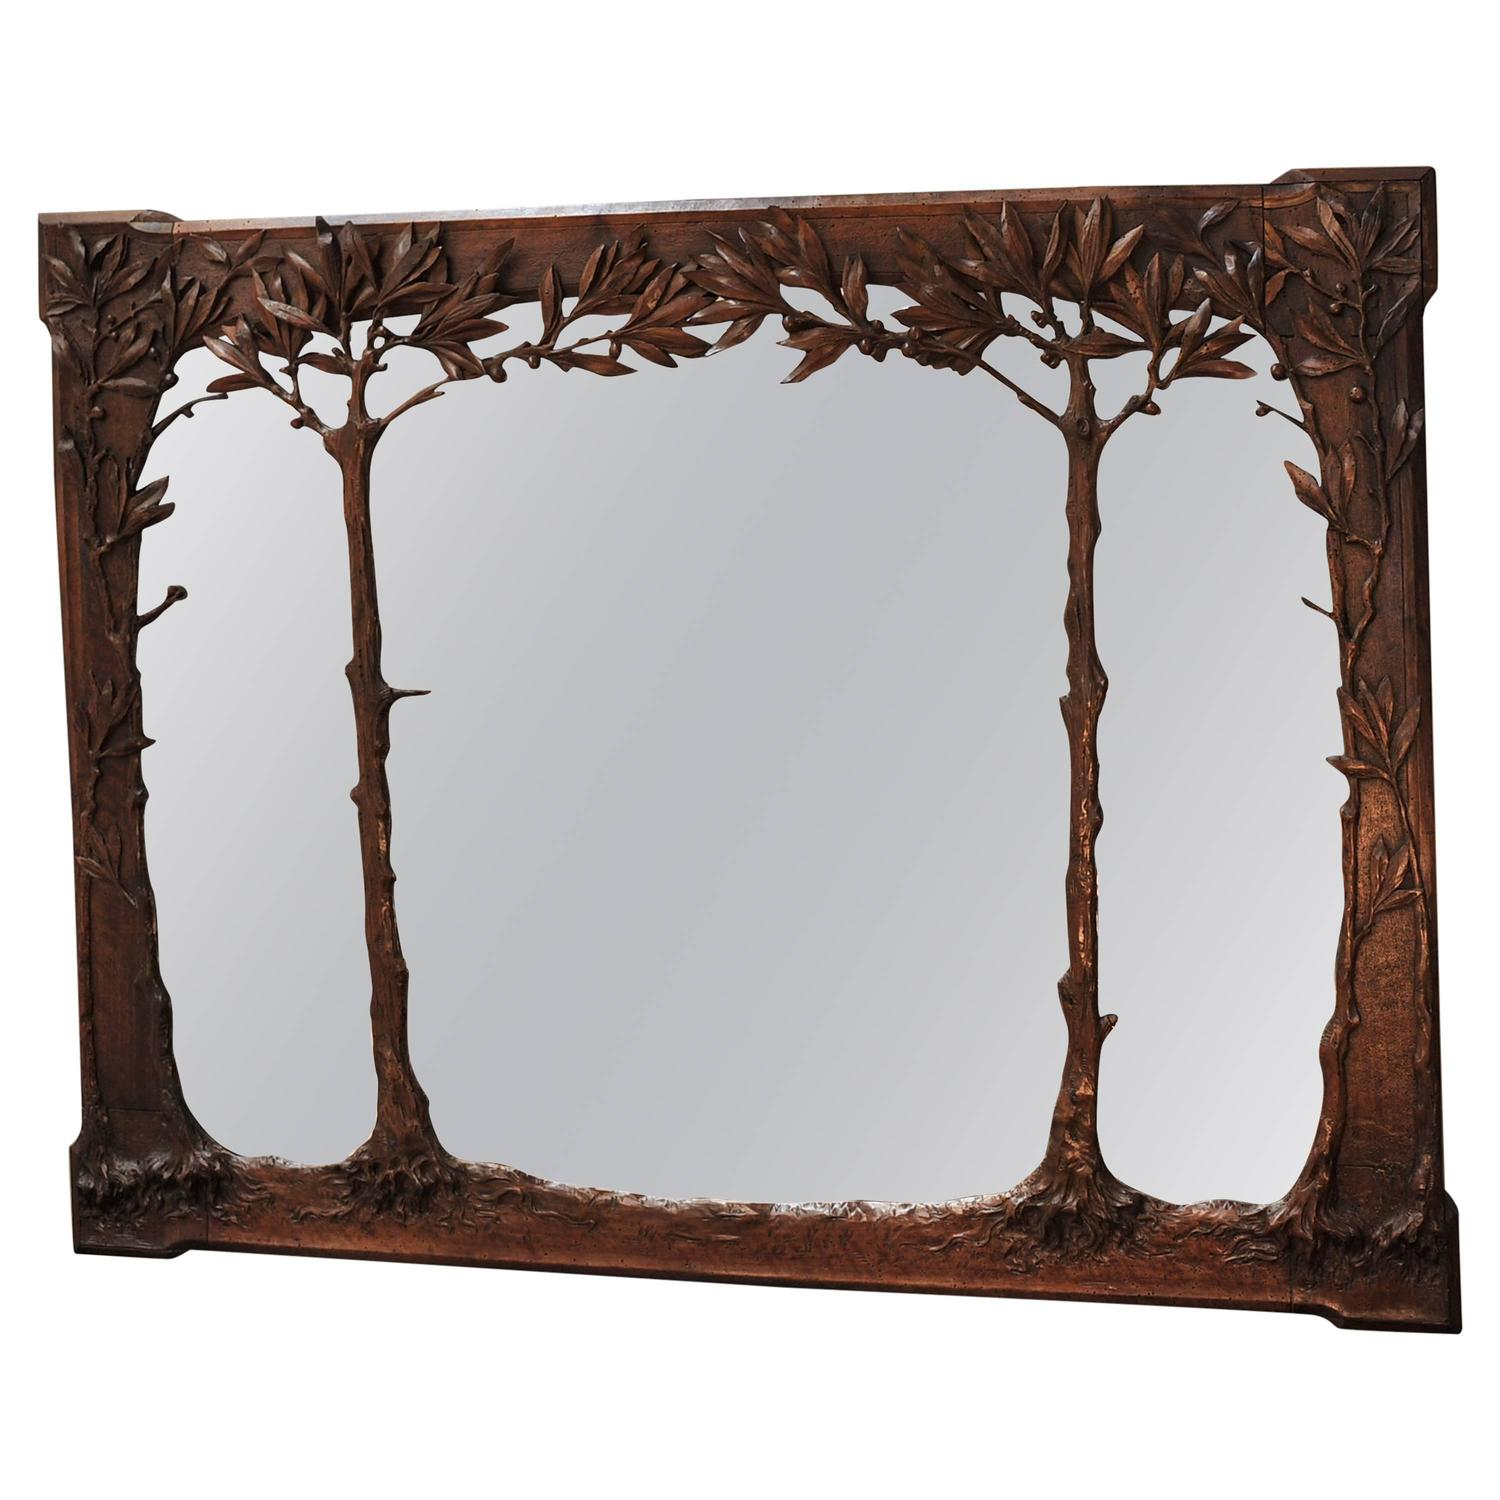 Art nouveau 1900 french walnut mirror at 1stdibs for Mirror mirror songsterr